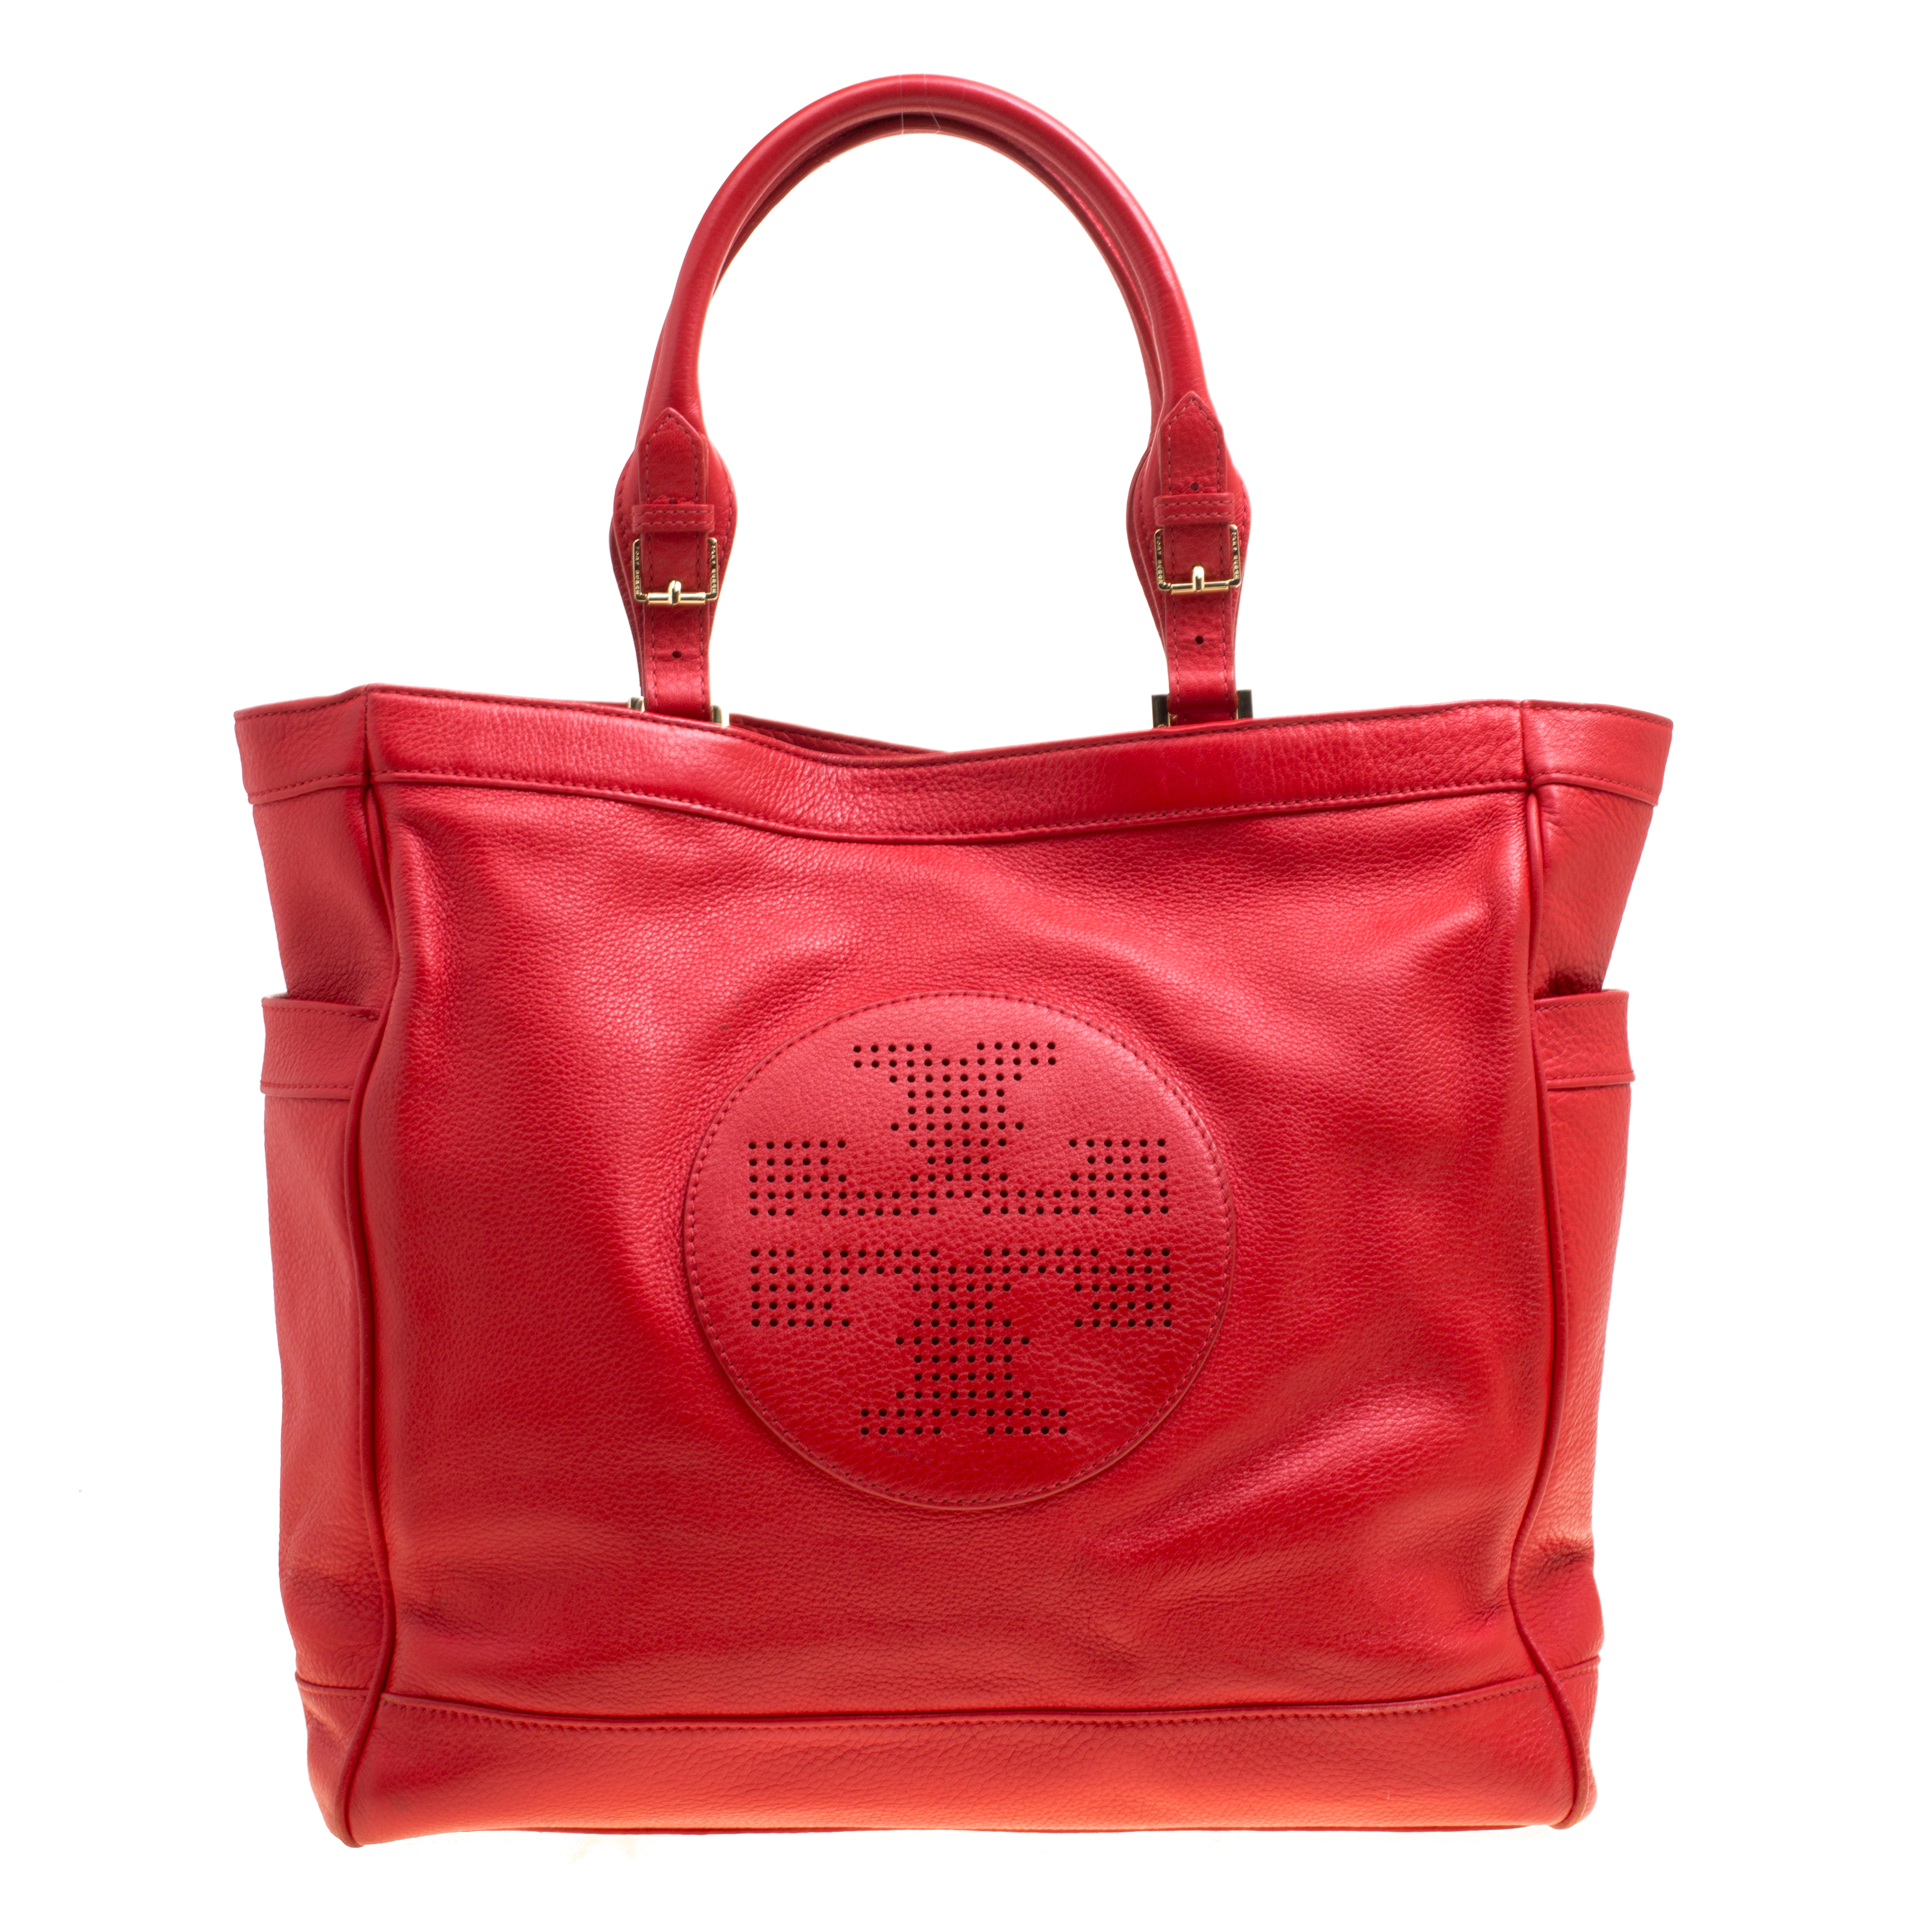 b9557767086 Buy Tory Burch Red Leather Tote 167476 at best price